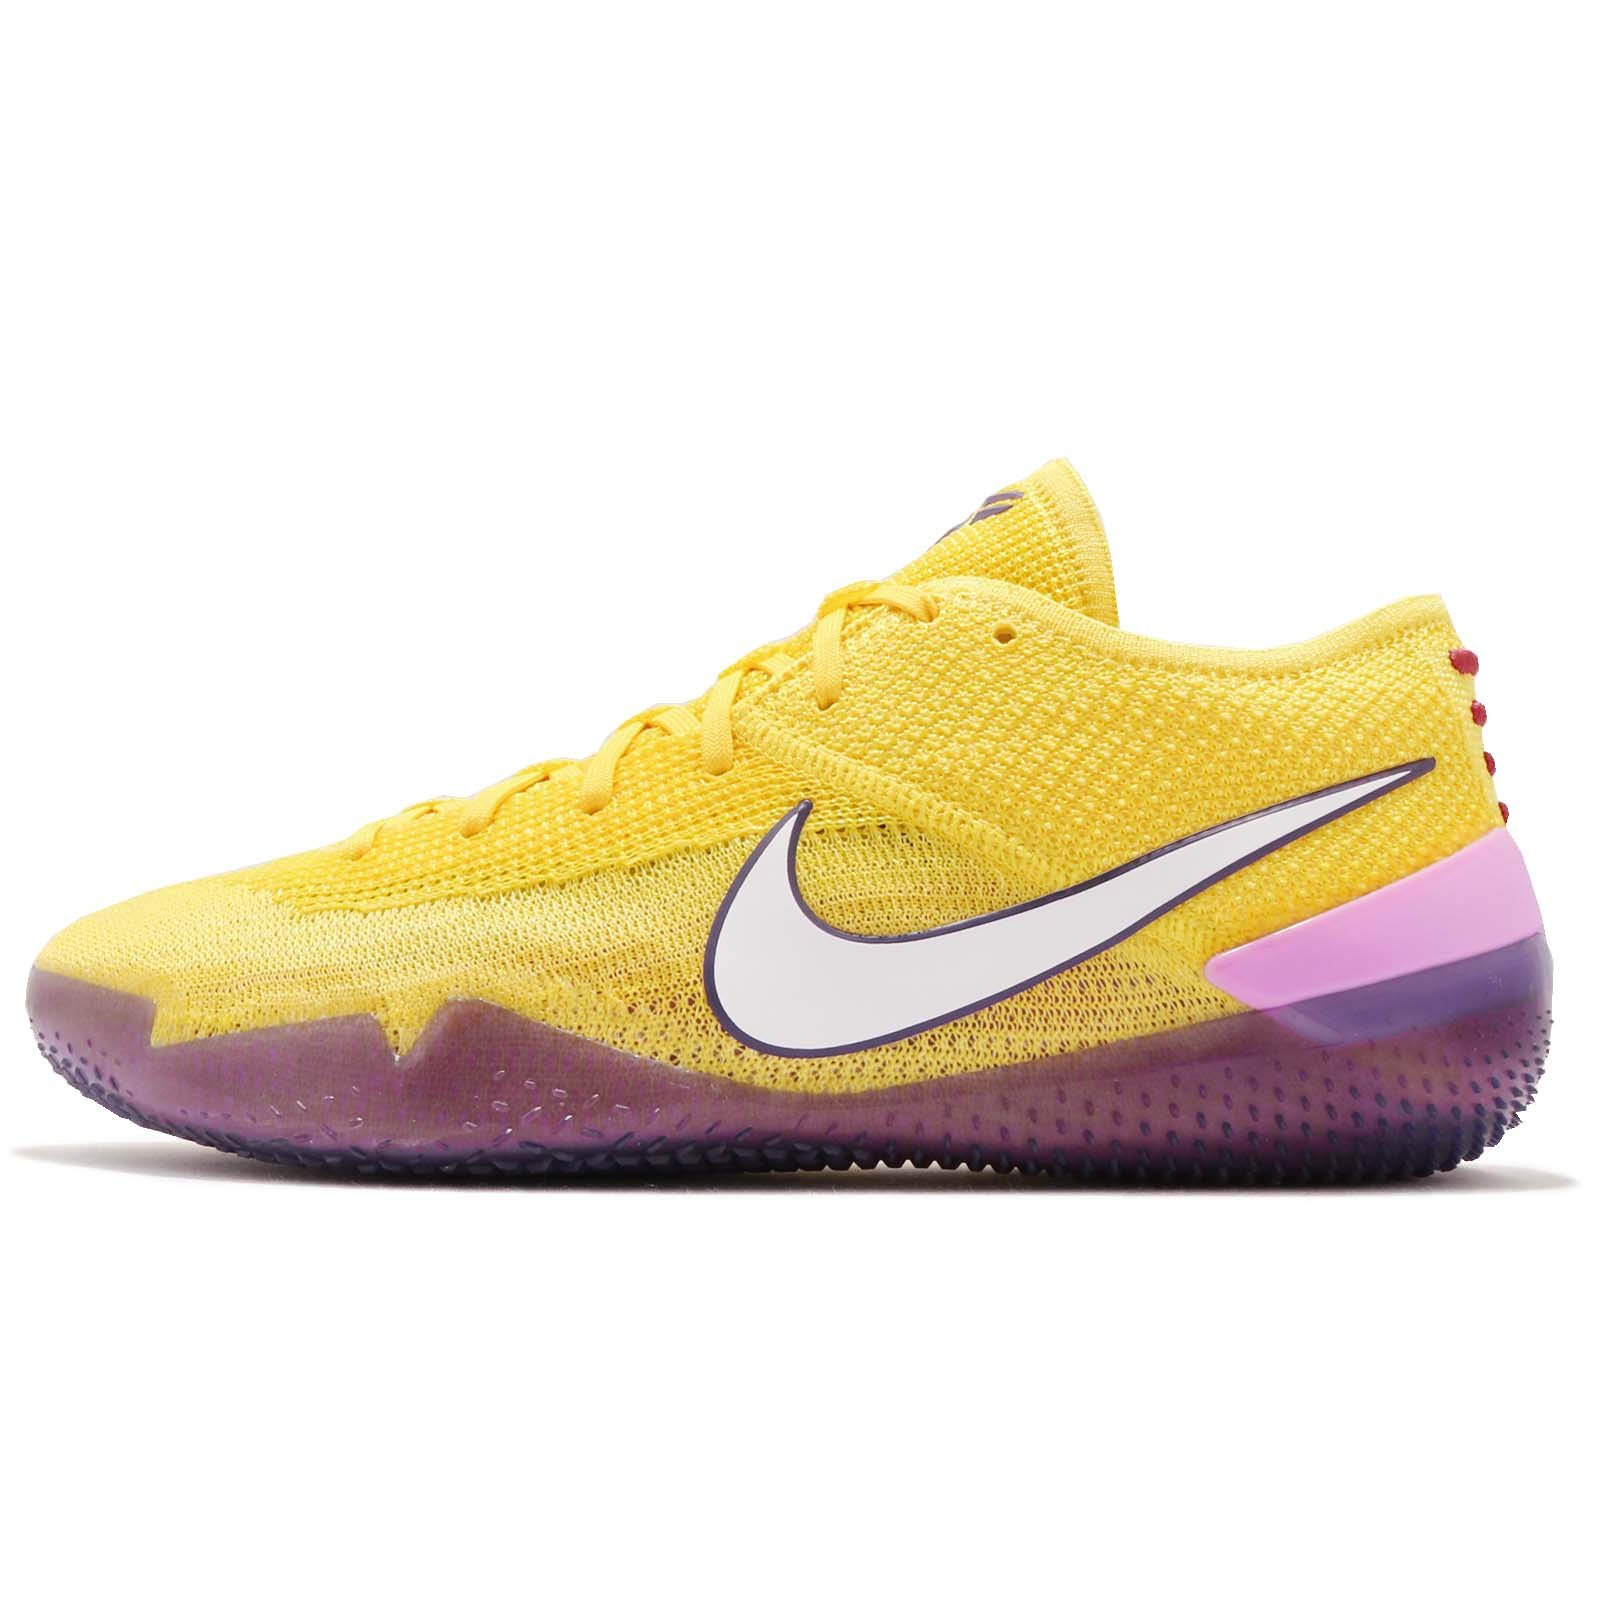 7386e06c09149 Galleon - Nike Men s Kobe A.D. NXT 360 Basketball Shoes (12-M) Yellow White